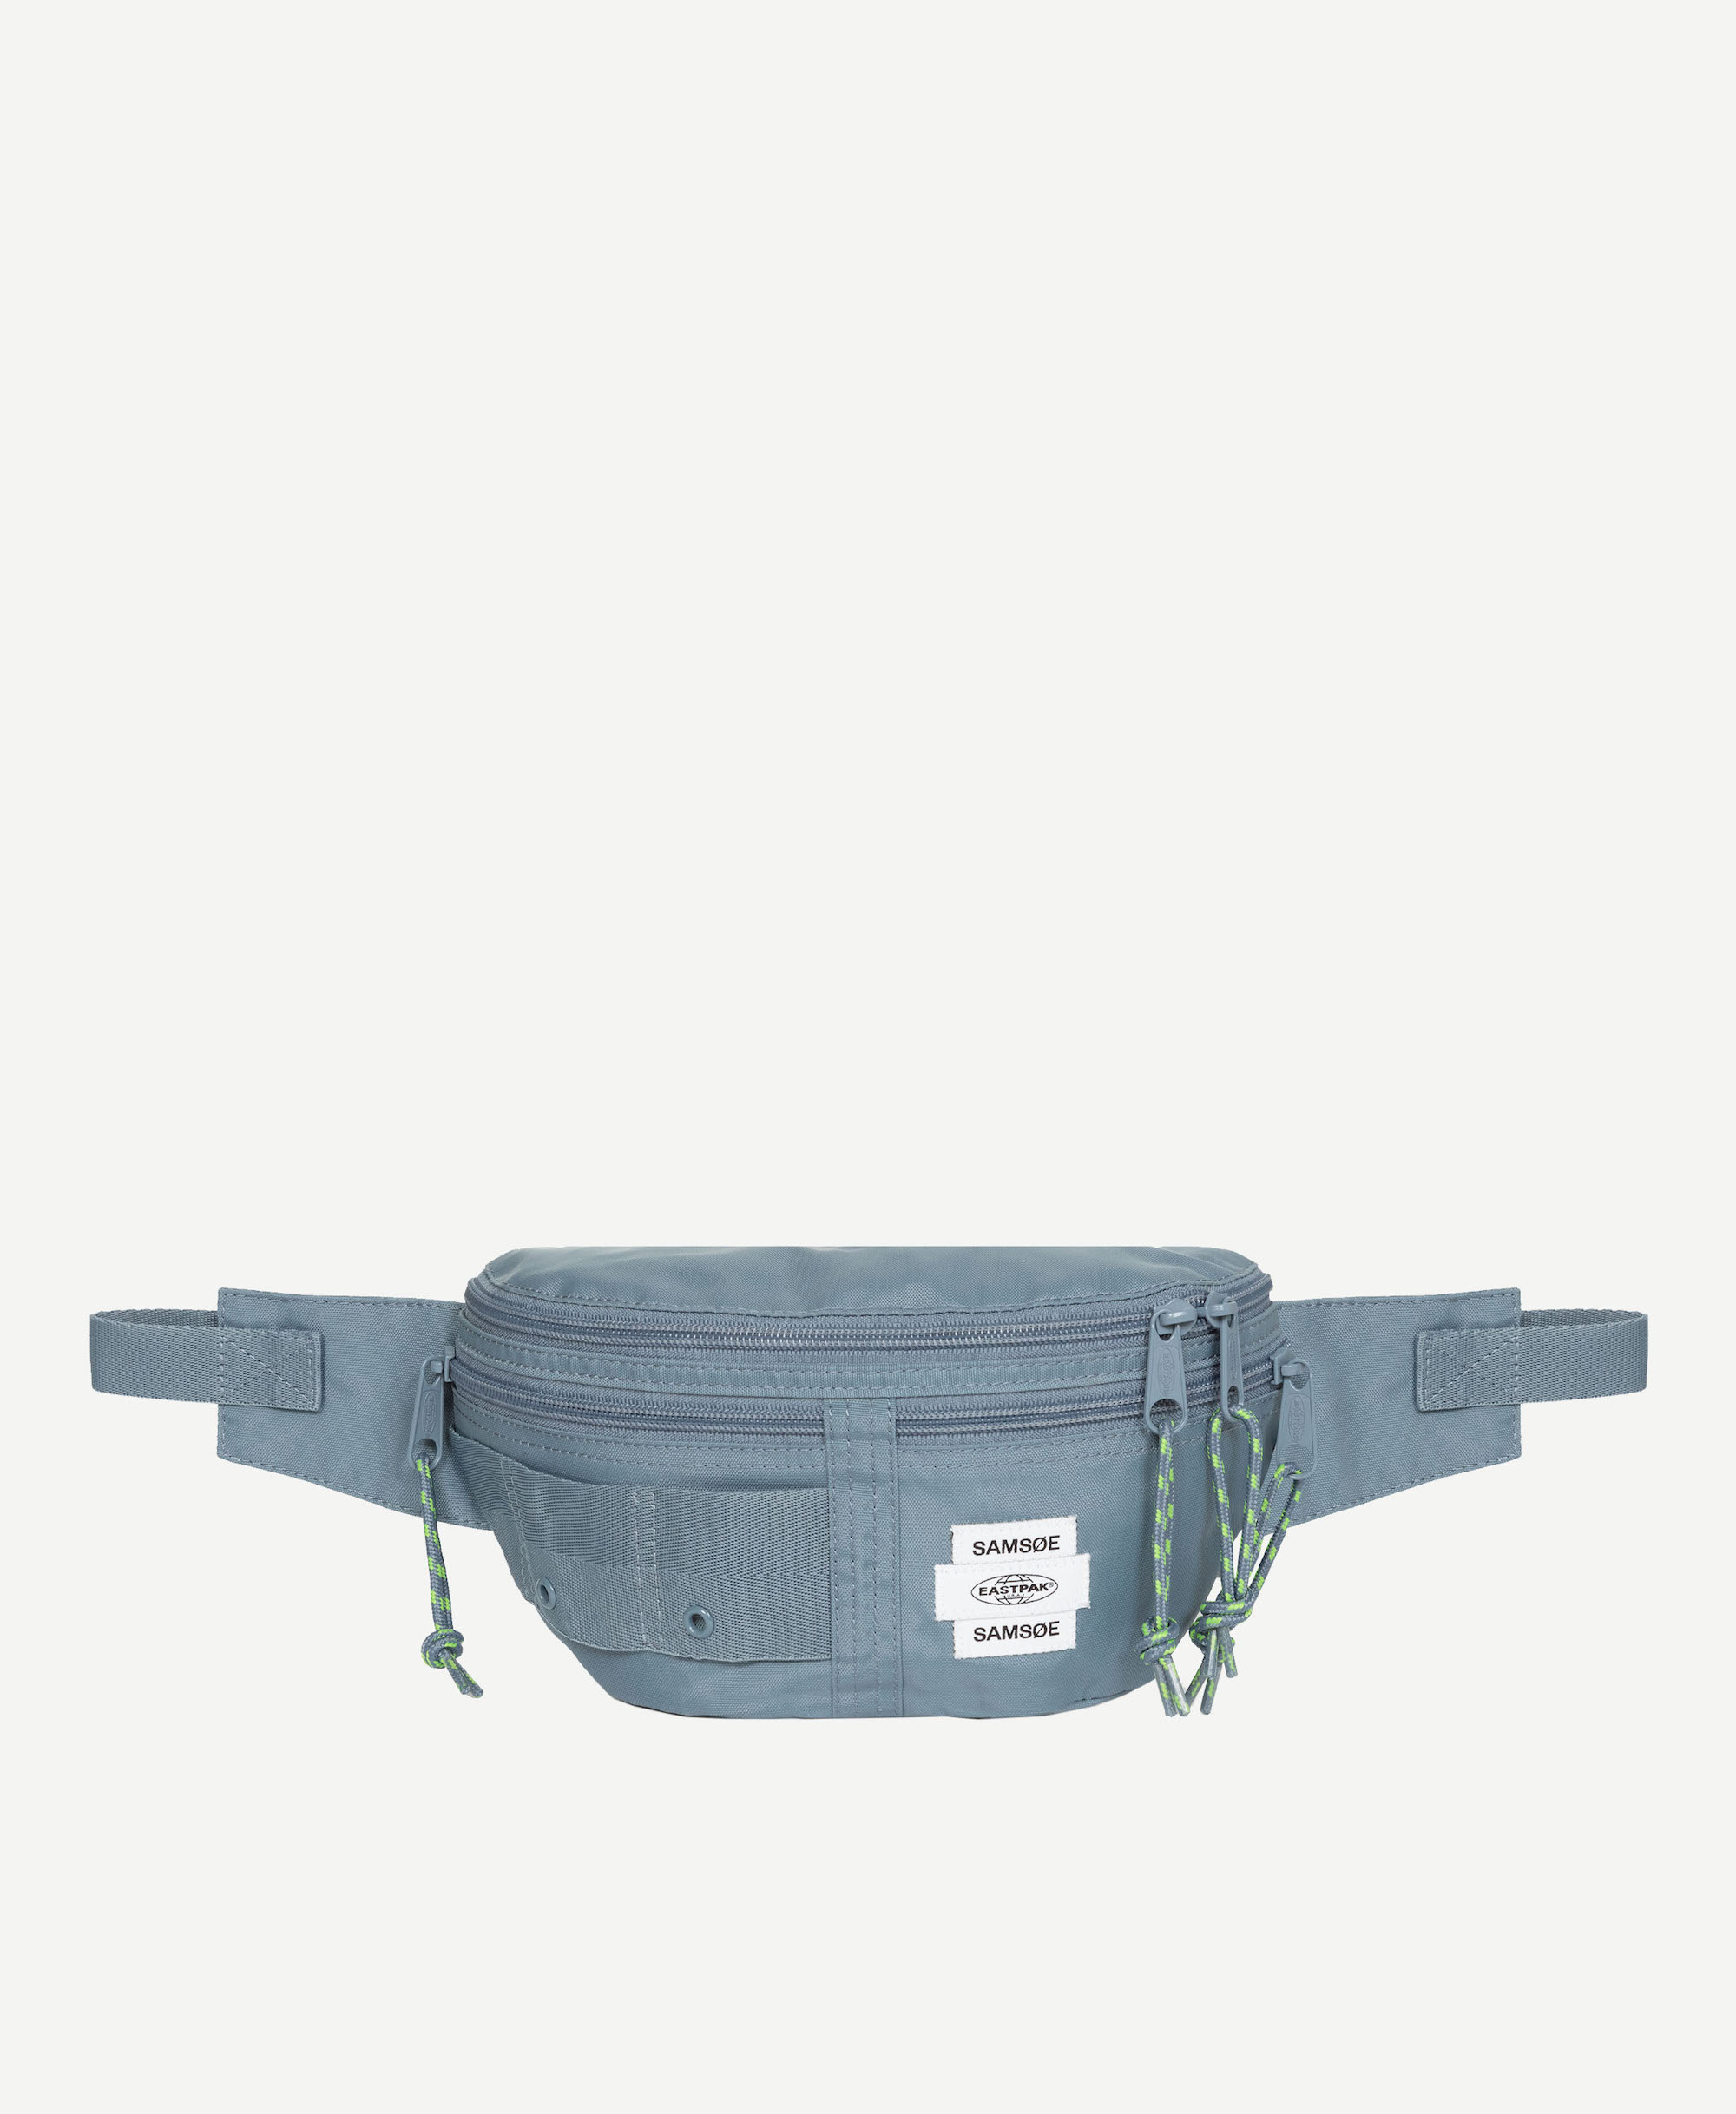 SAMSOE SAMSOE_SS21_EASTPAK_WAIST BAG 13052_BLUE MIRAGE